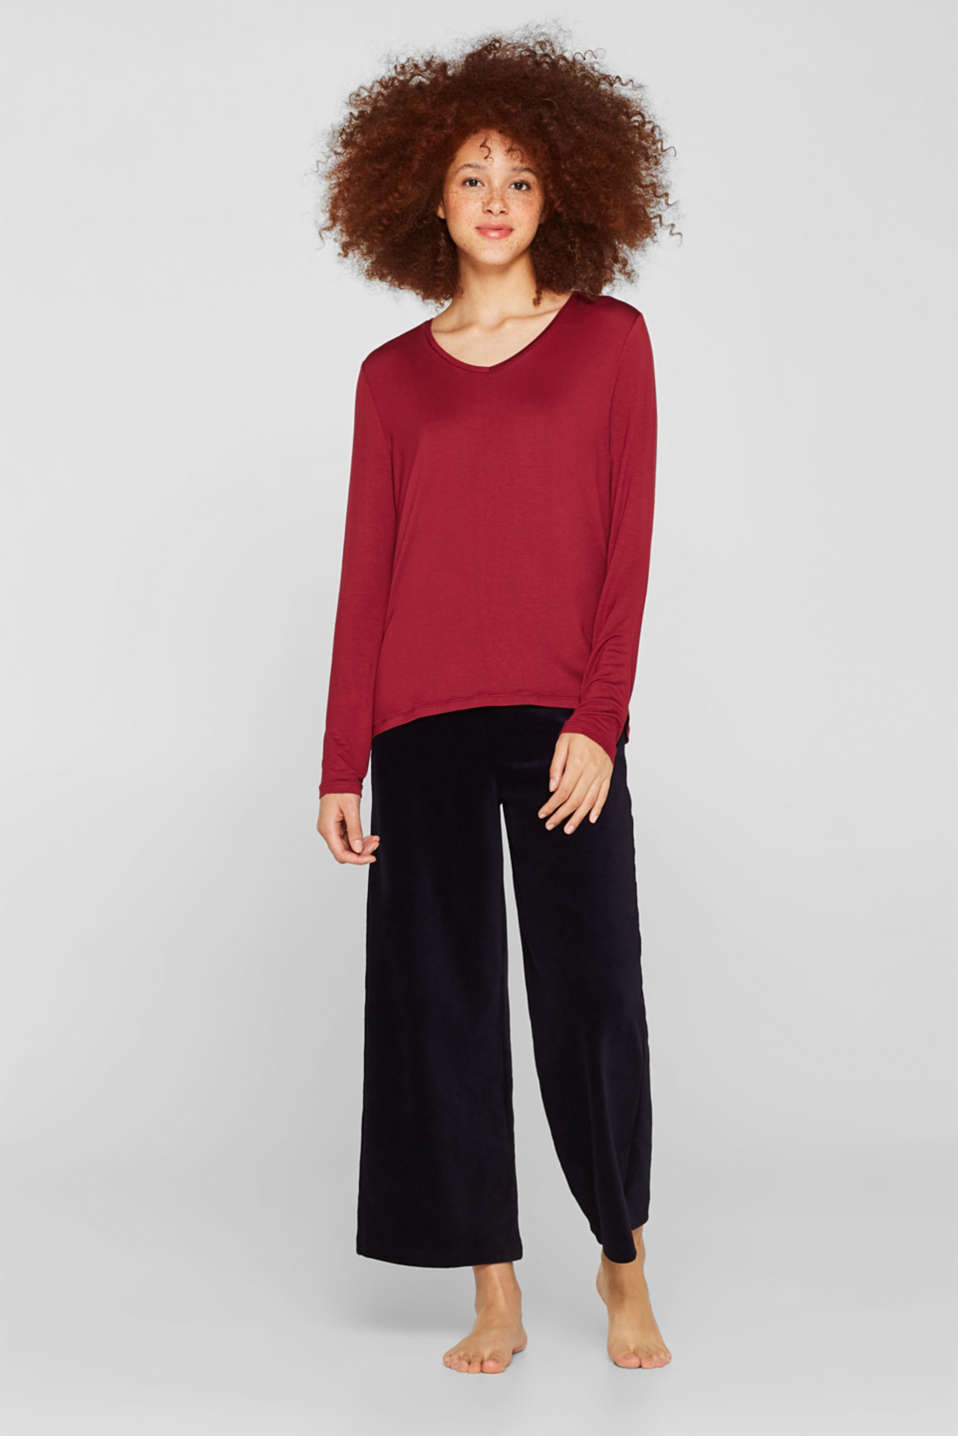 Esprit - Stretch long sleeve top with a lace trim